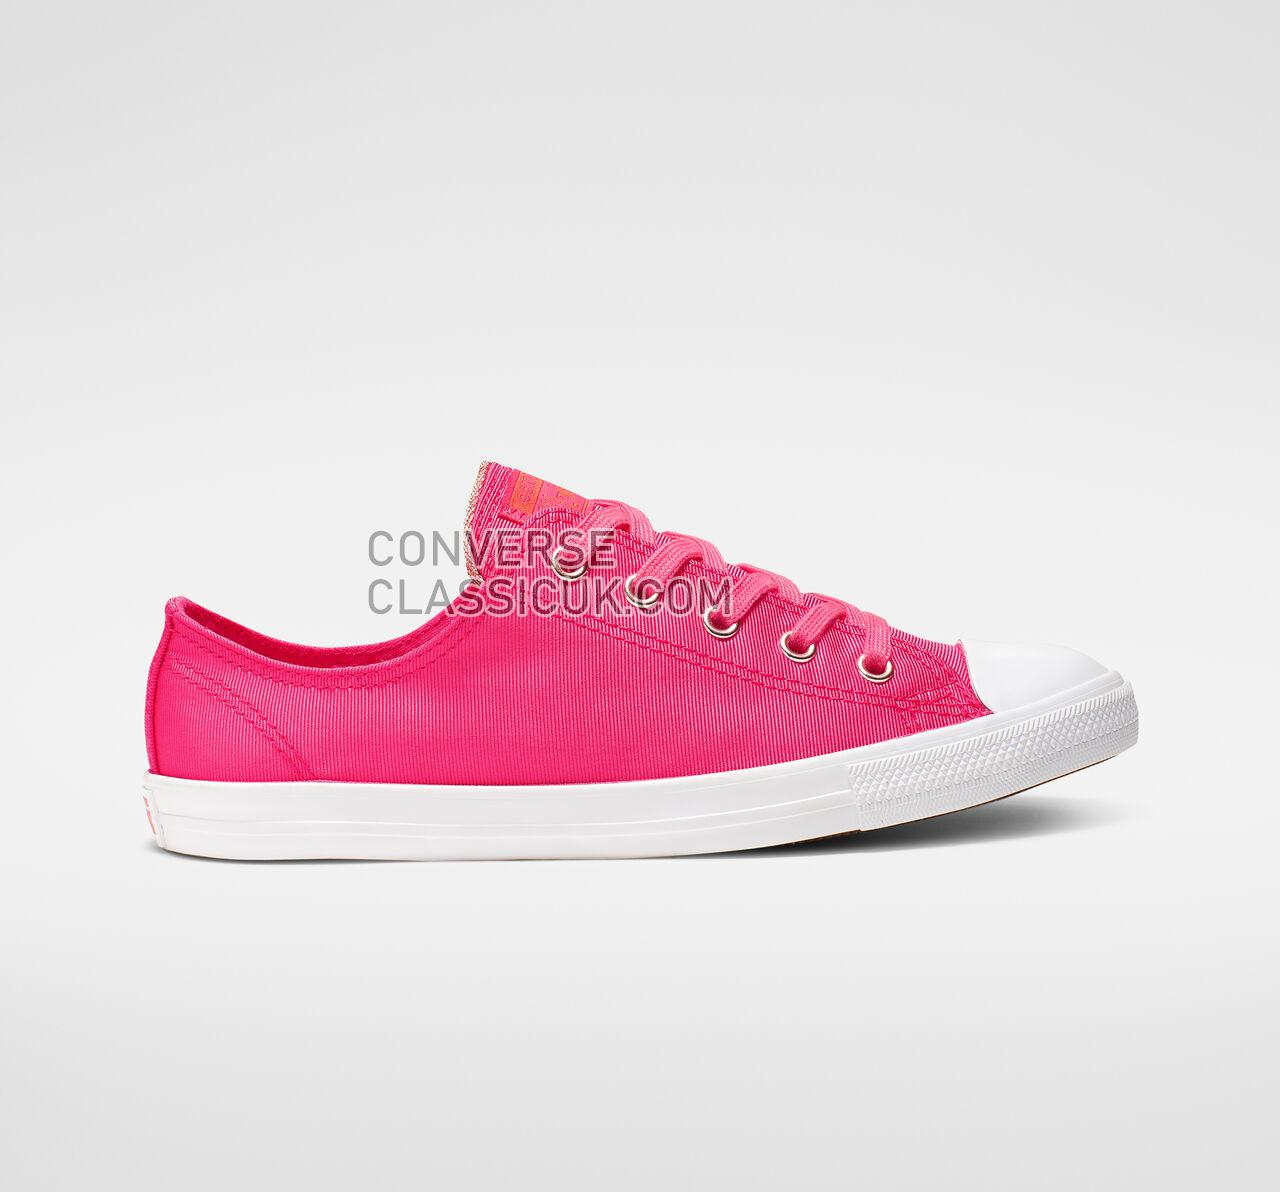 Converse Chuck Taylor All Star Dainty Low Top Womens 564306F Strawberry Jam/Turf Orange Shoes